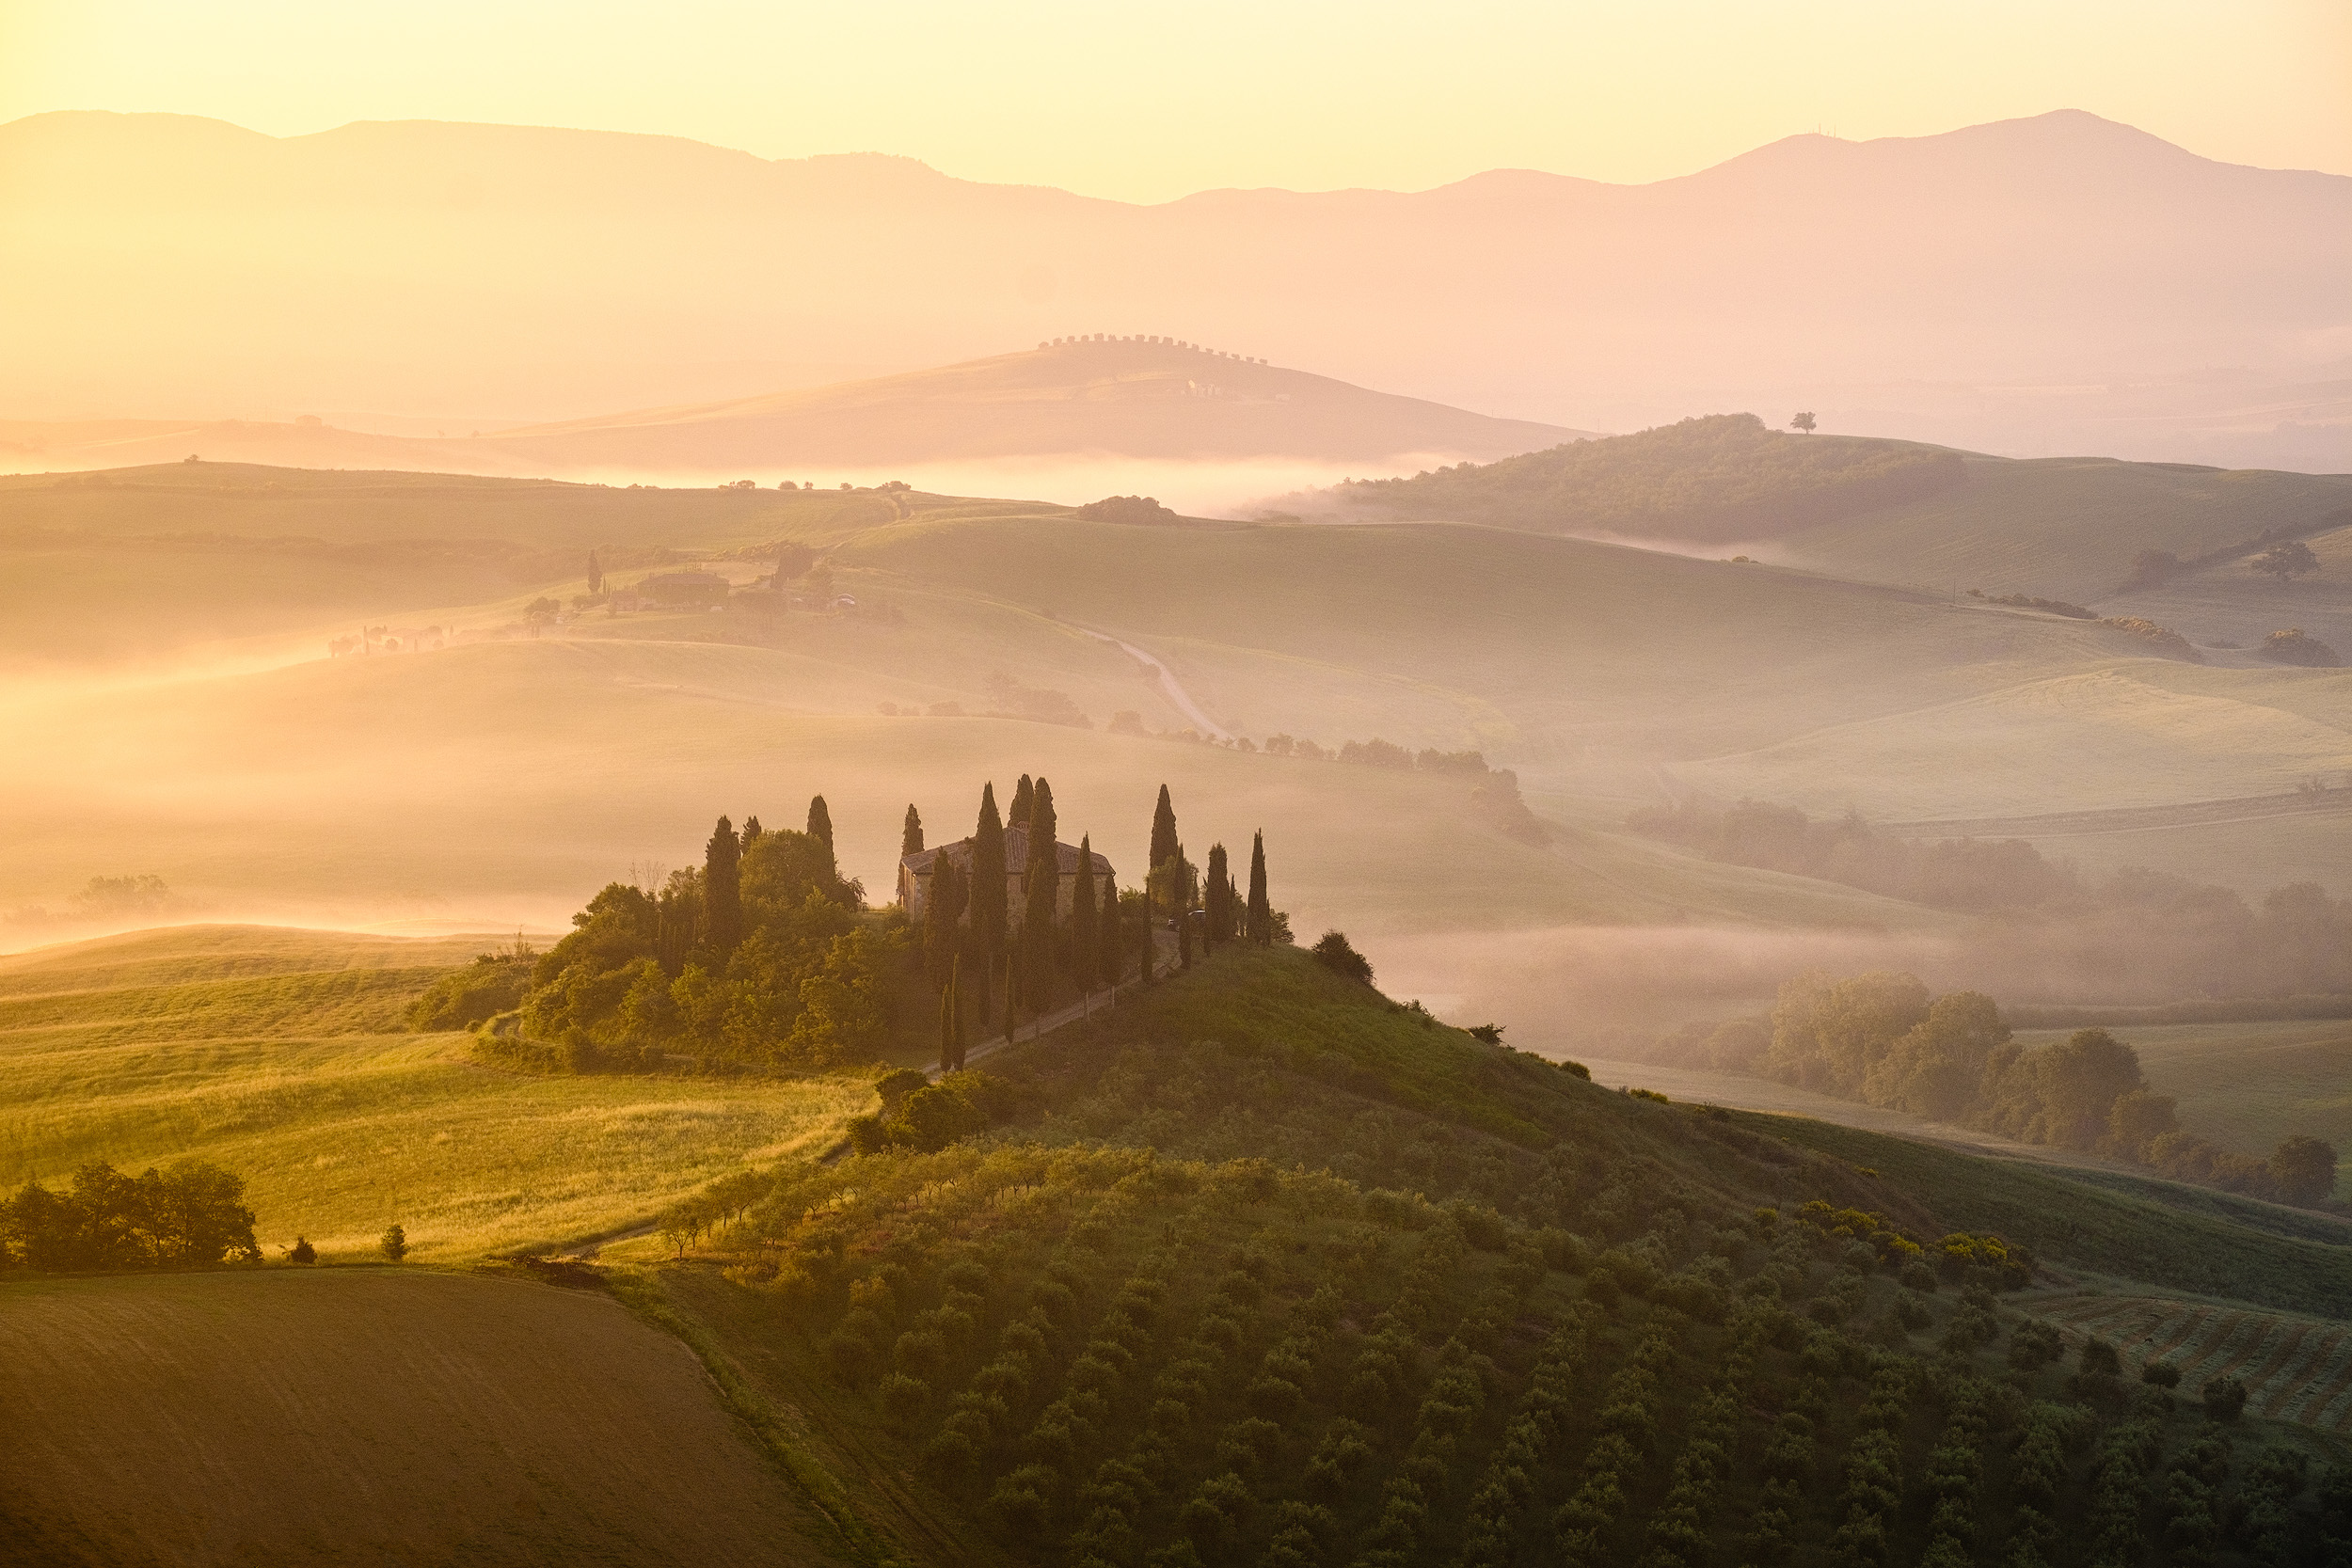 Belvedere   It's hard to get bored of the wonderful views in Tuscany's Val d'Orcia in the morning, even one as iconic as Belvedere farmhouse.